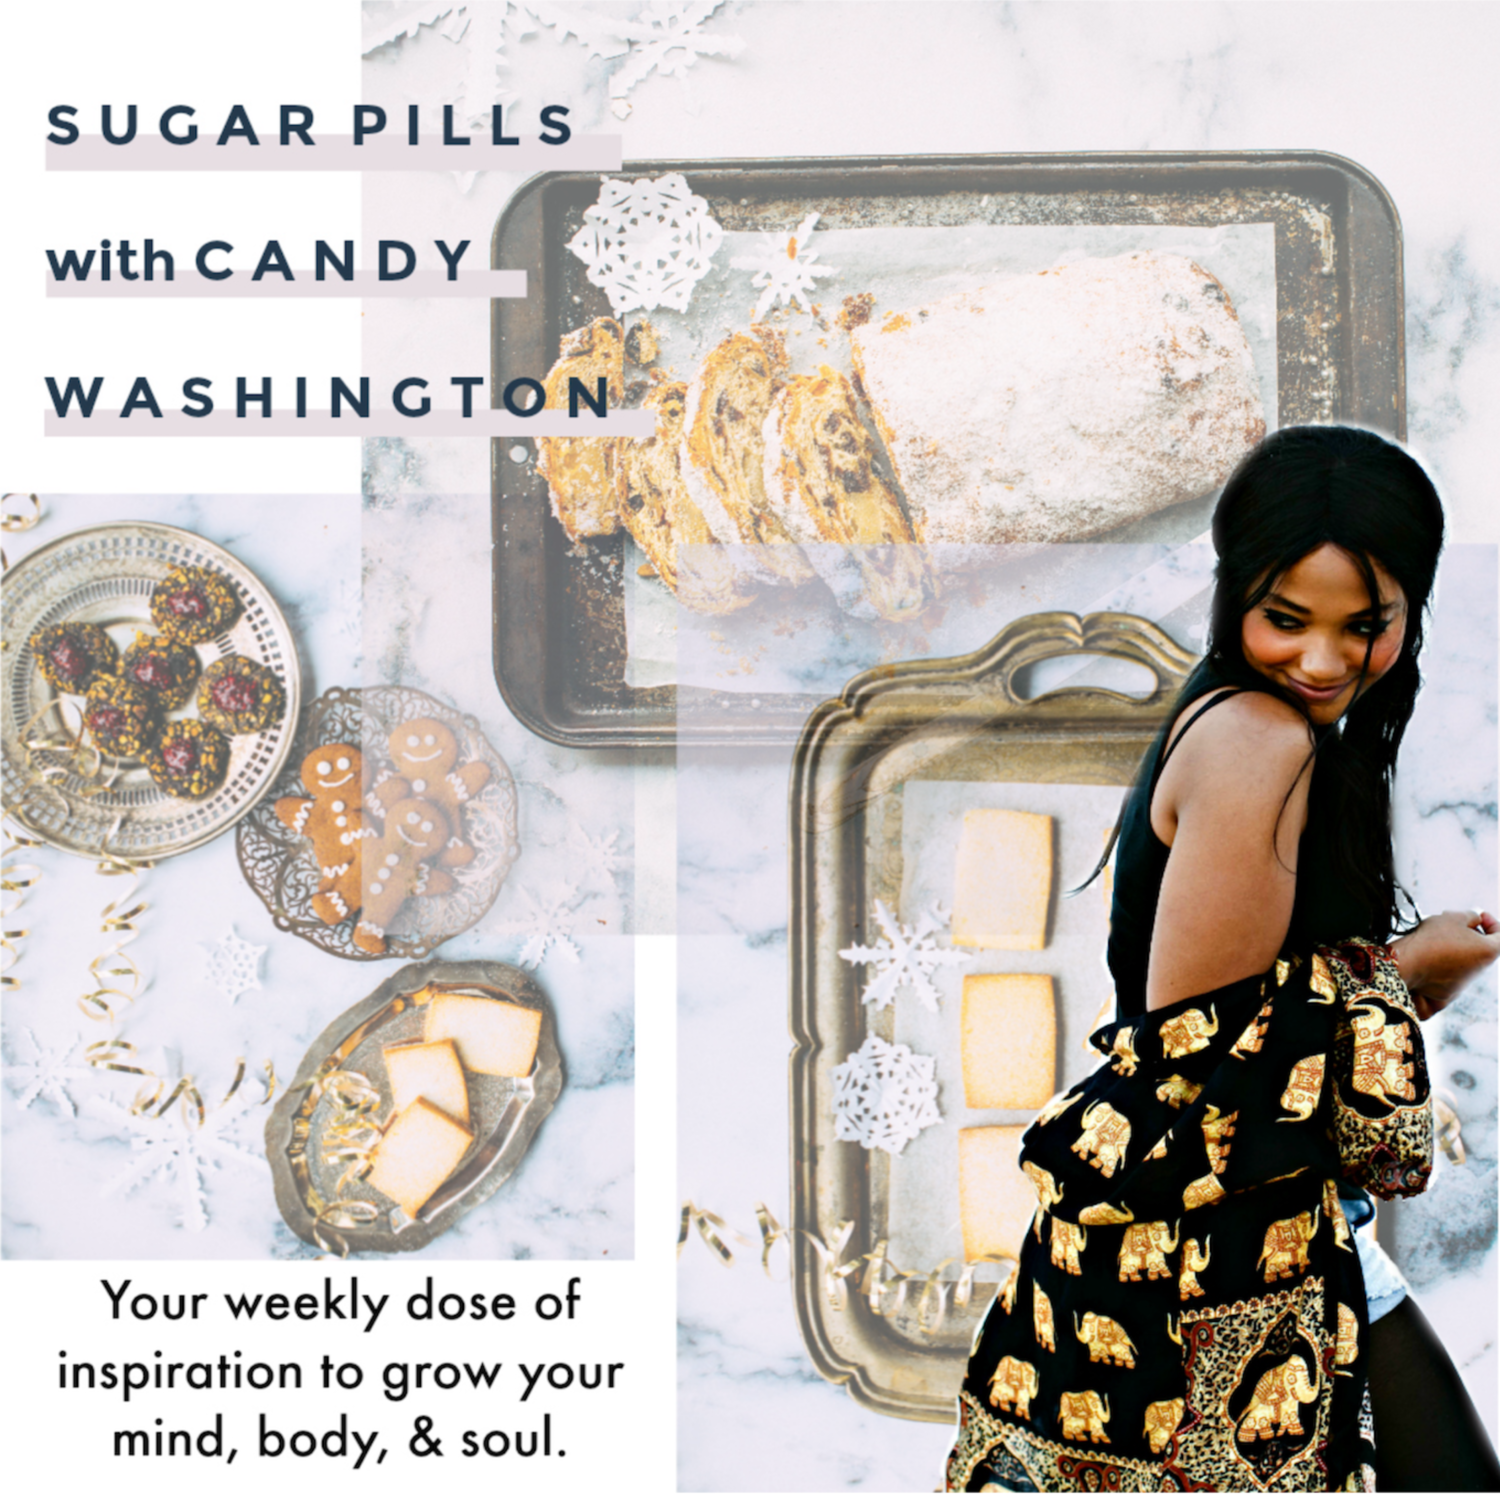 Sugar Pills: Your weekly dose of inspiration to grow your mind, body, and soul